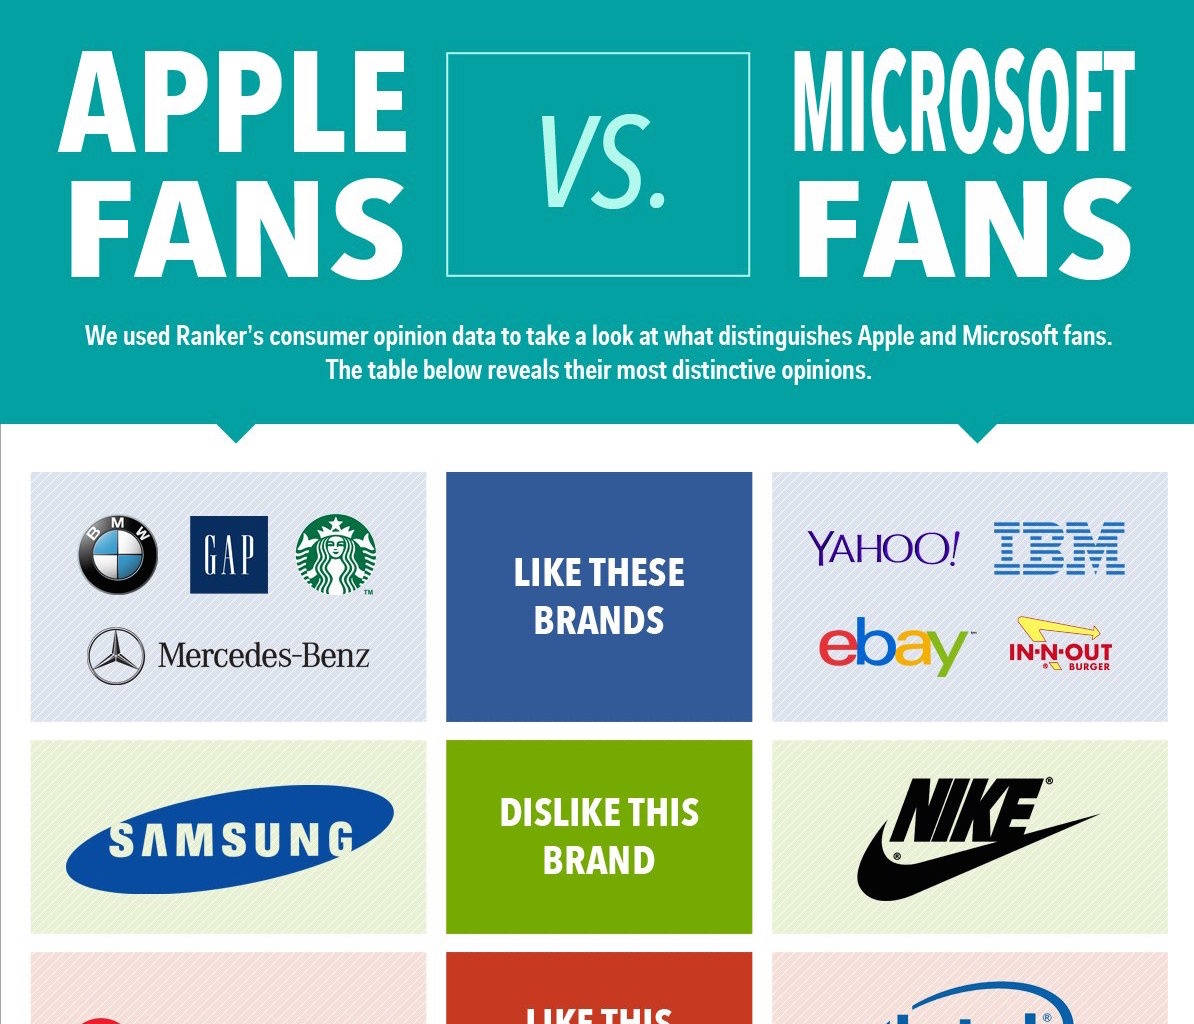 Apple and Microsoft fans have very little in common